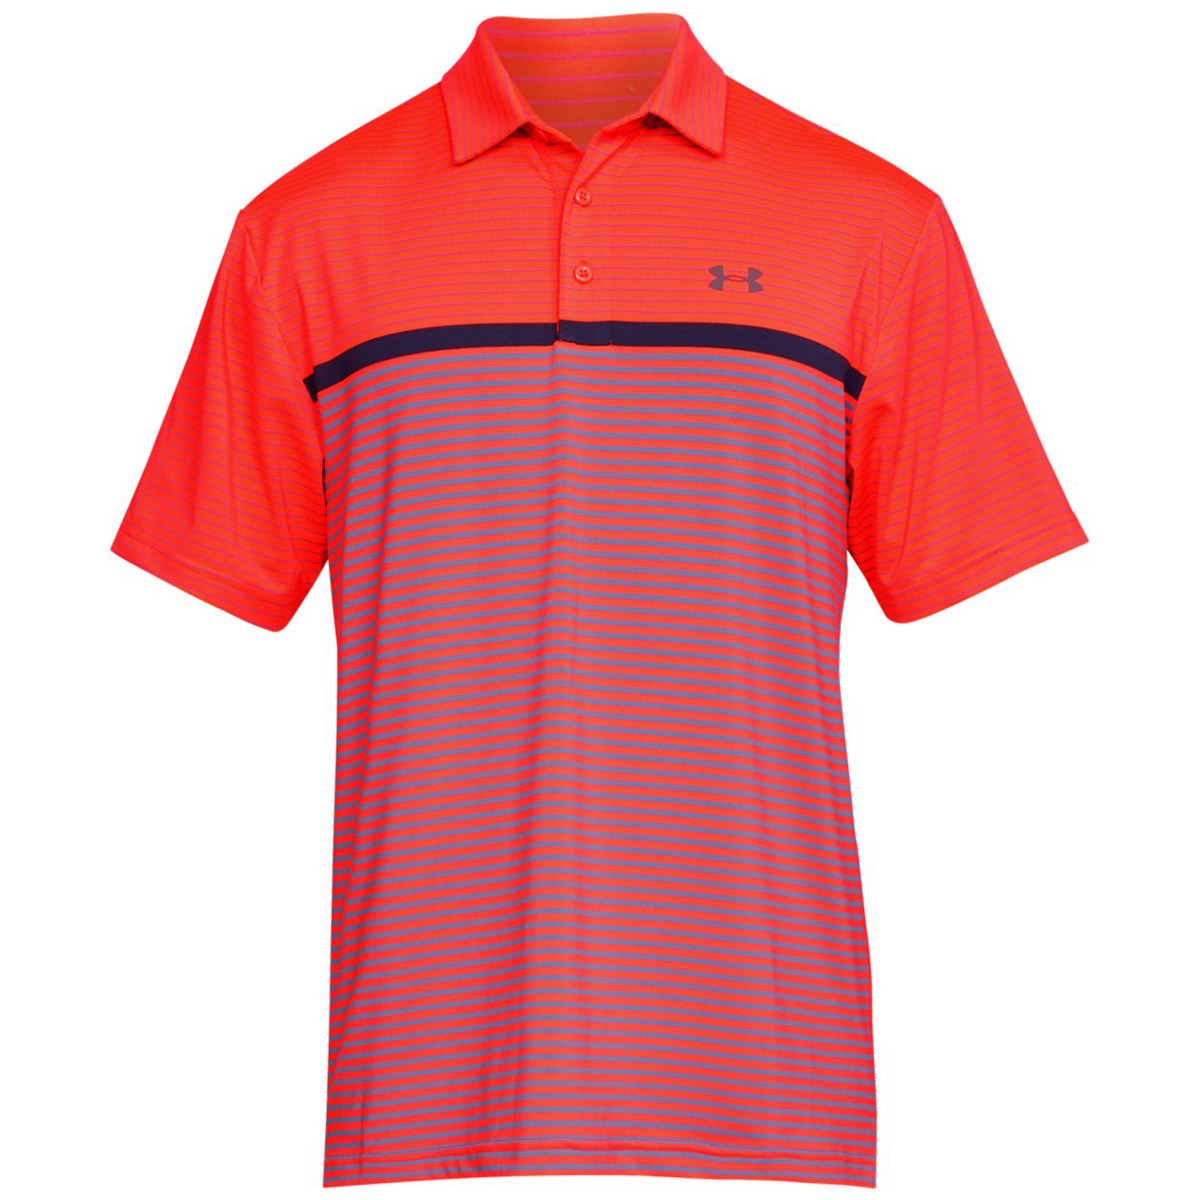 Under-Armour-Mens-UA-Playoff-Performance-Golf-Polo-Shirt-42-OFF-RRP thumbnail 29